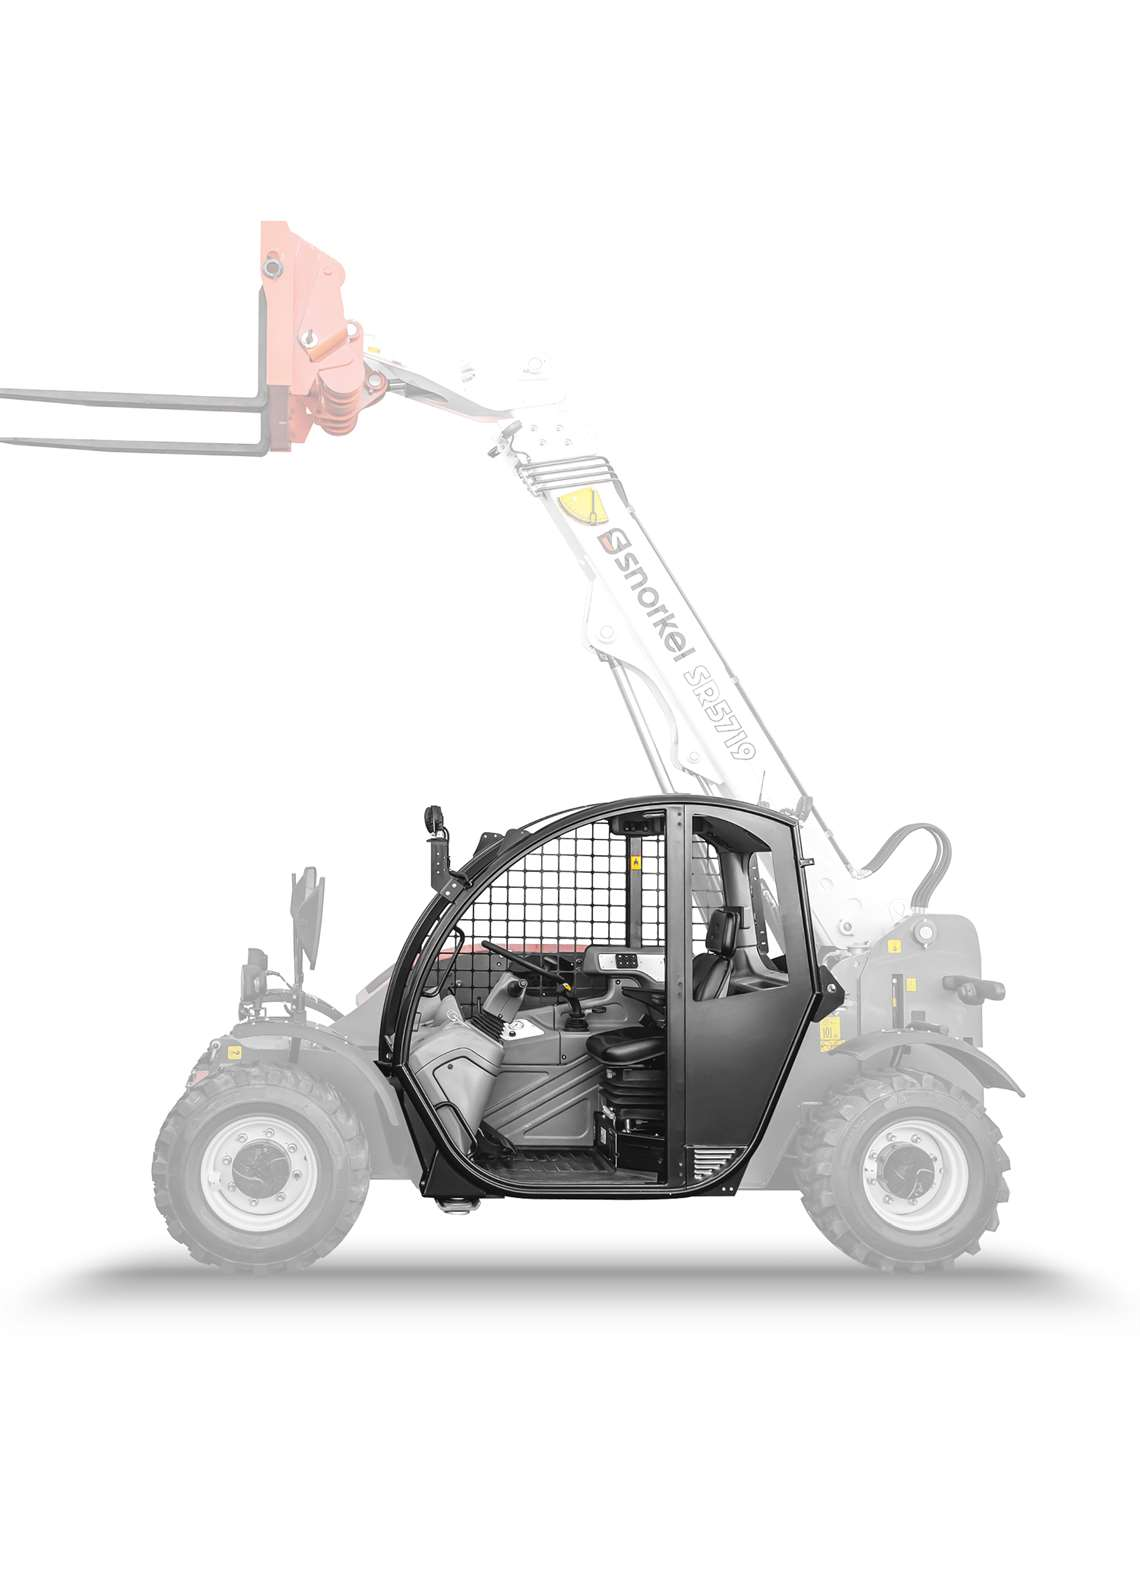 Snorkel's SR5719 telehandler equipped with an open cab